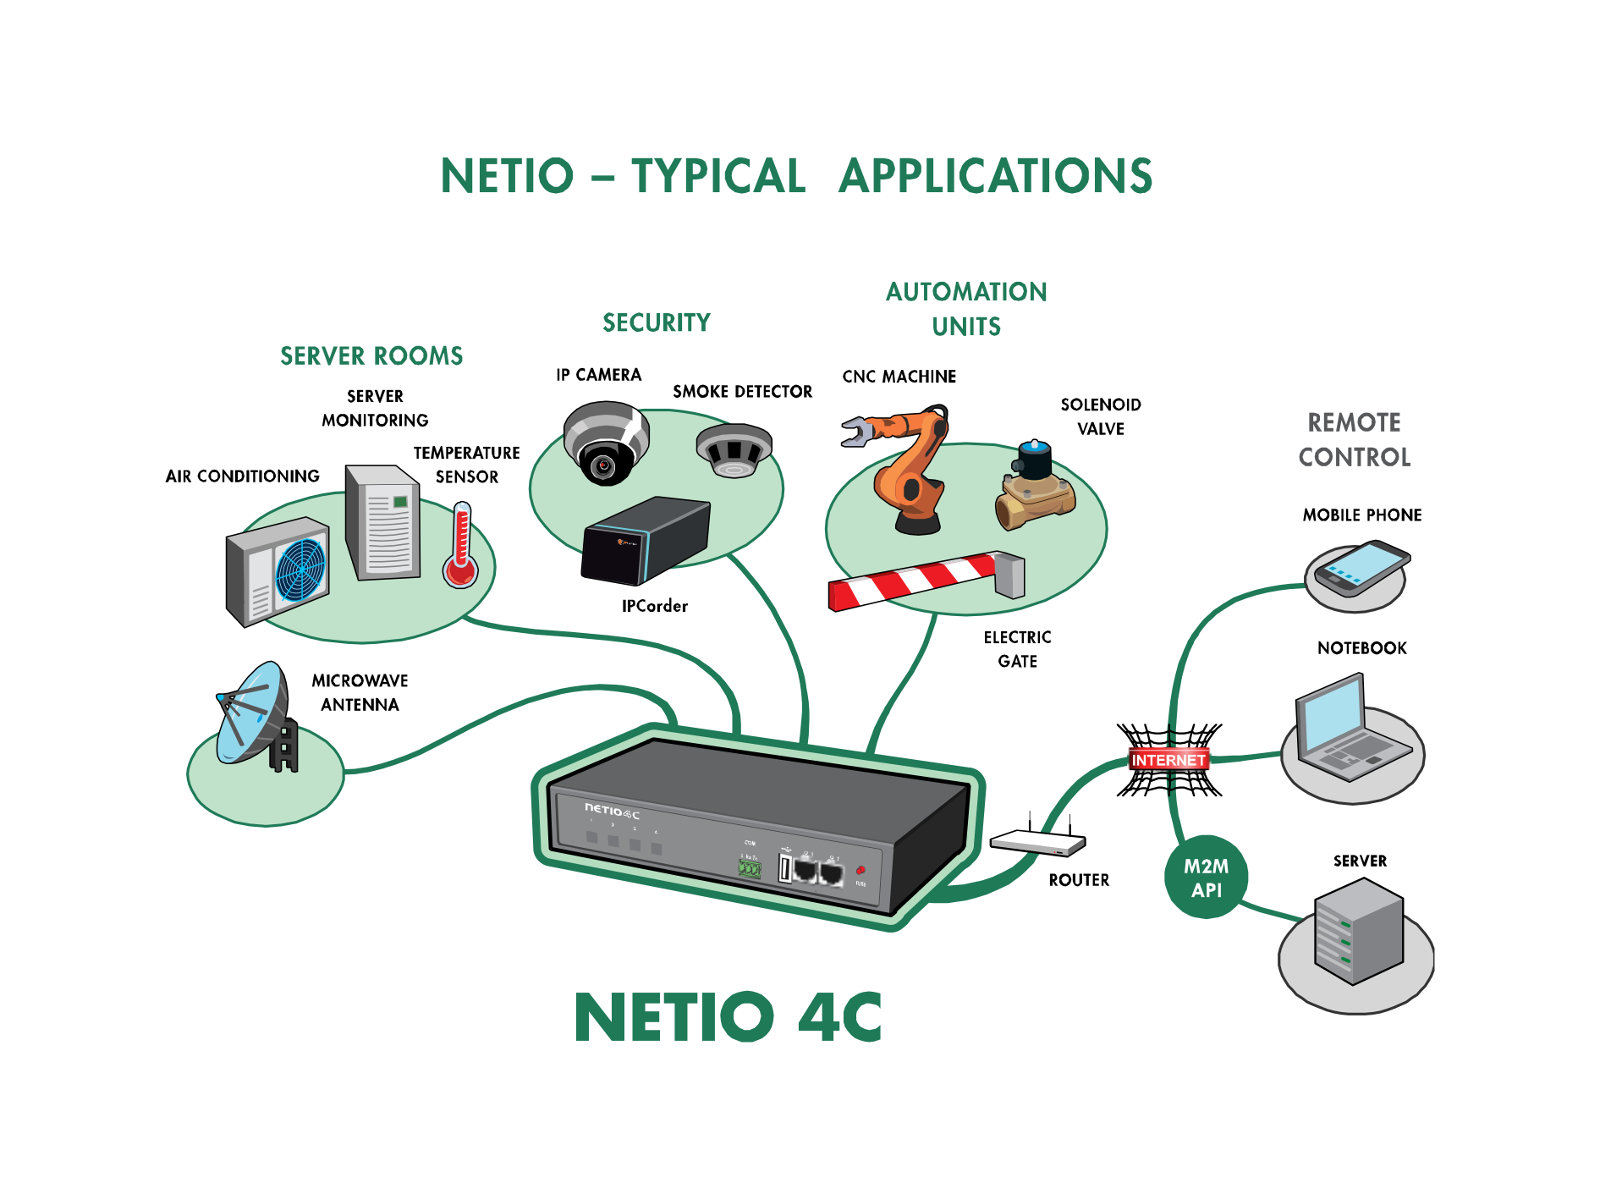 NETIO 4C, IEC 320, API, server monitoring, remote control switch, remote reboot switch, server shutdown, ip controlled power outlet, automation units, security, IP camera, Email alert, overvoltage protection